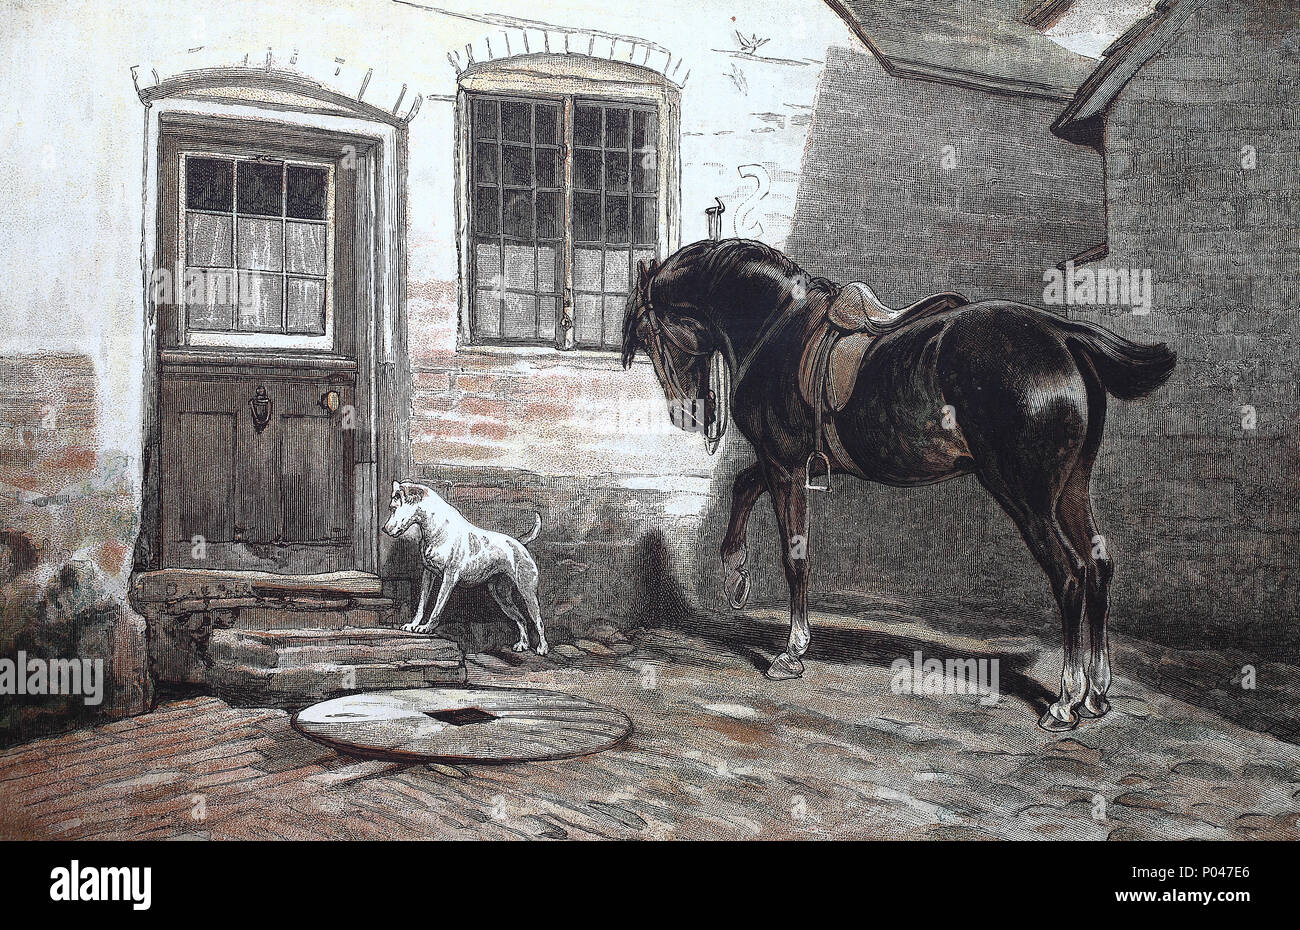 dog and horse getting impatient for the people, digital improved reproduction of an original print from the year 1881 - Stock Image